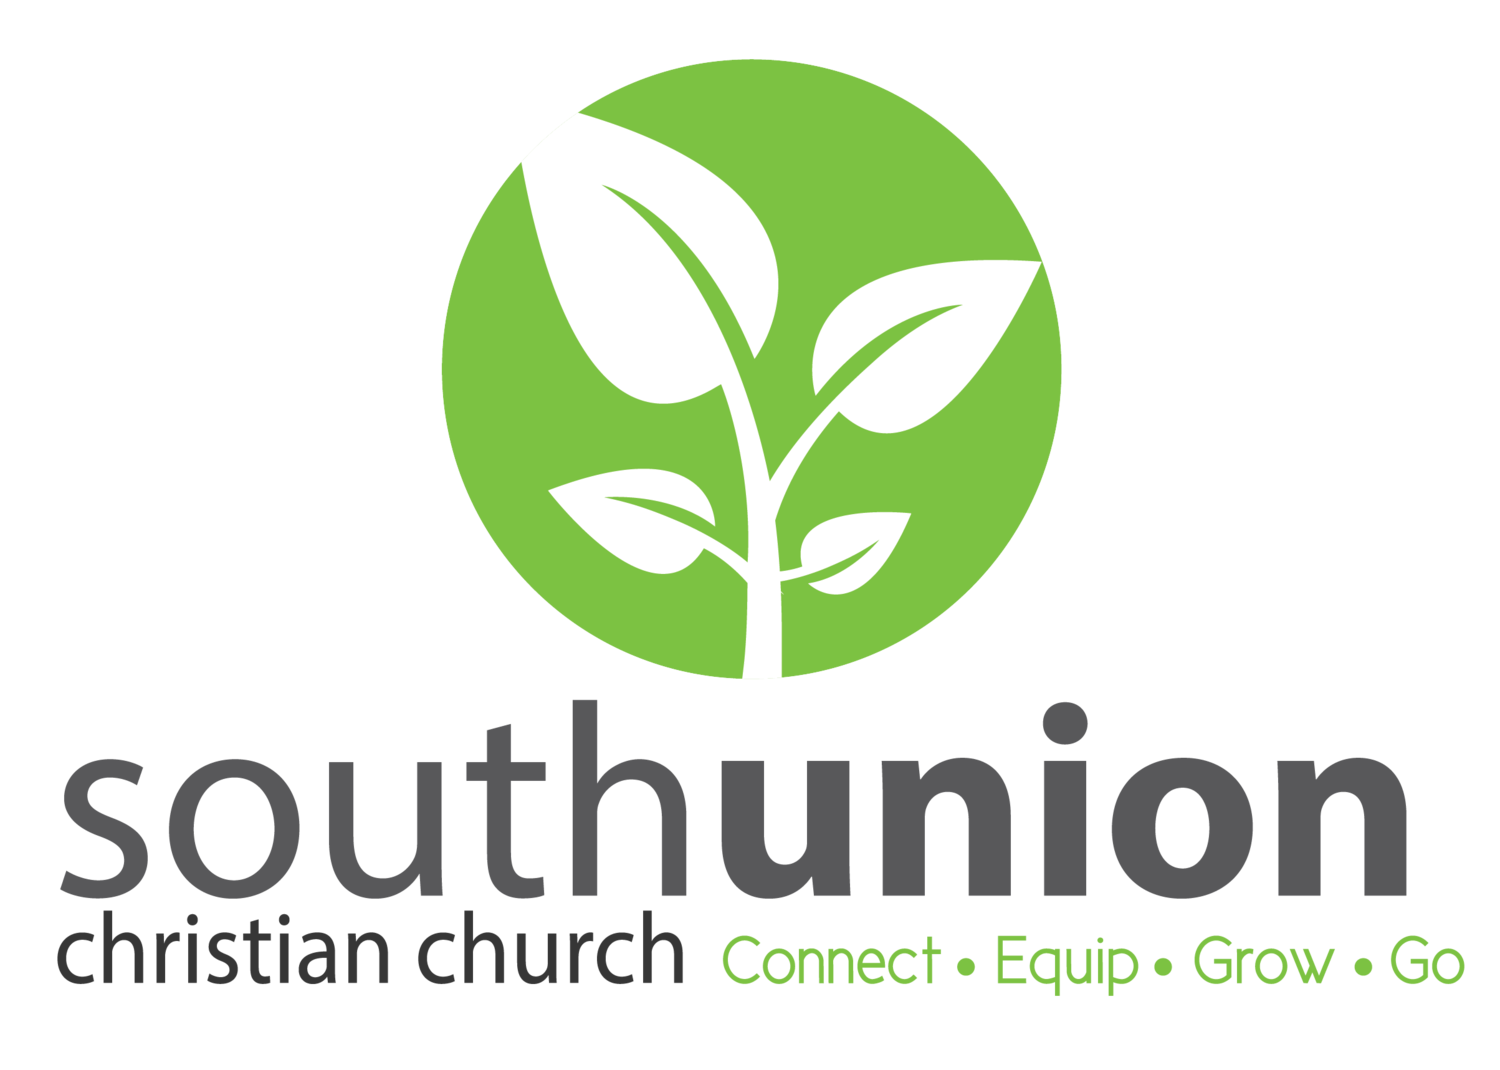 South Union Christian Church